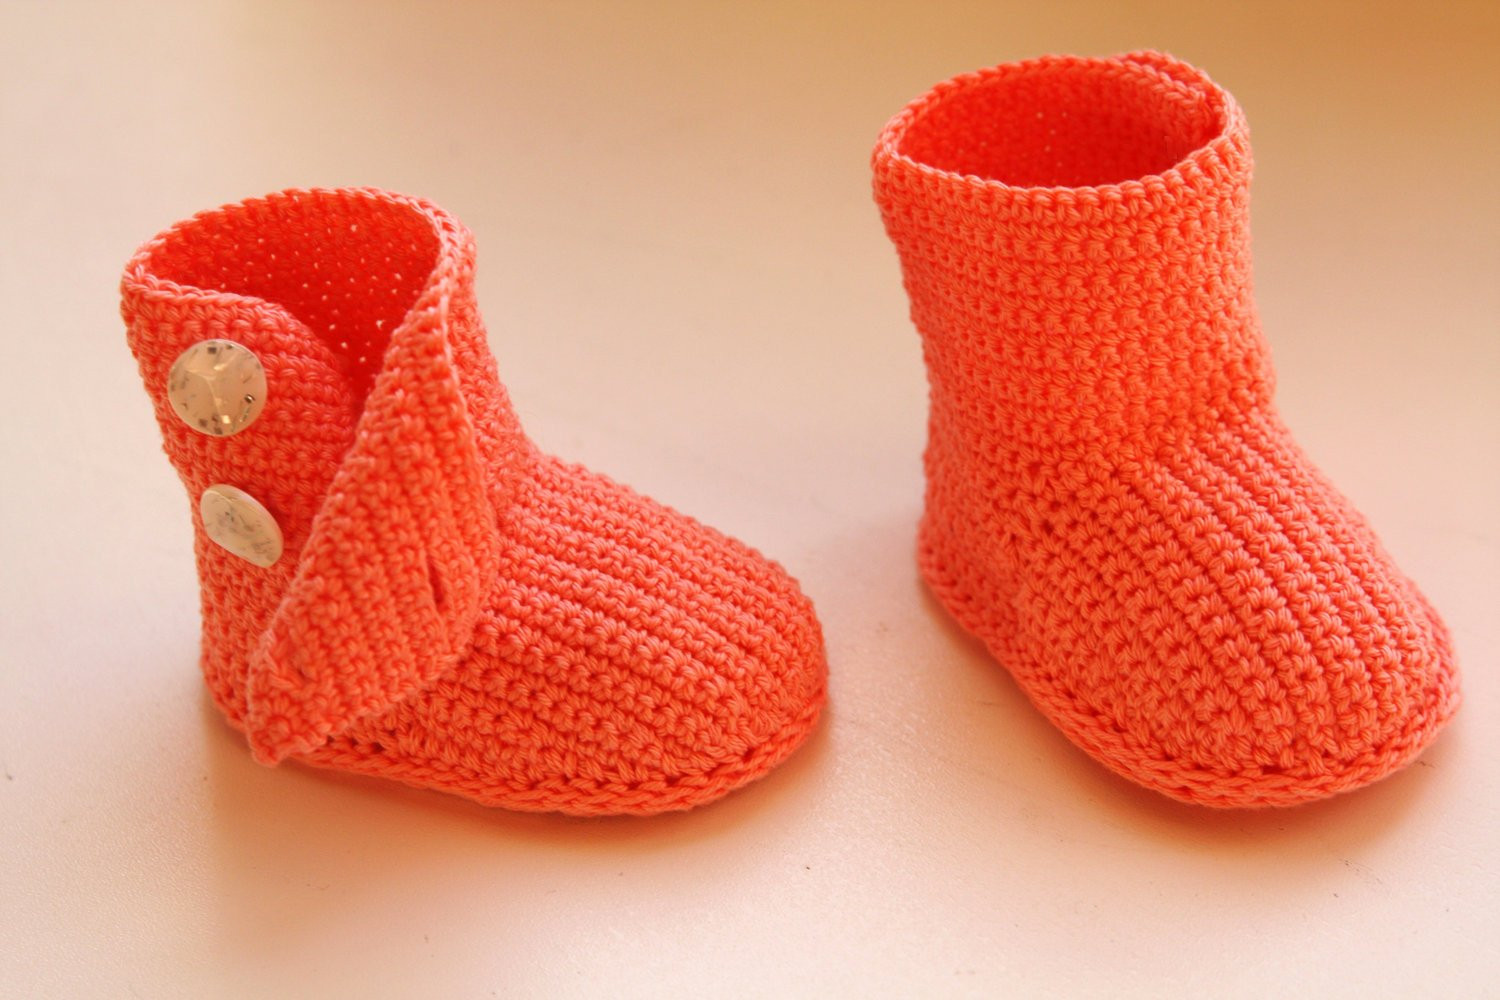 Elegant Baby Ugg Bootie Crochet Pattern Crochet Ugg Boots Of Beautiful 42 Ideas Crochet Ugg Boots